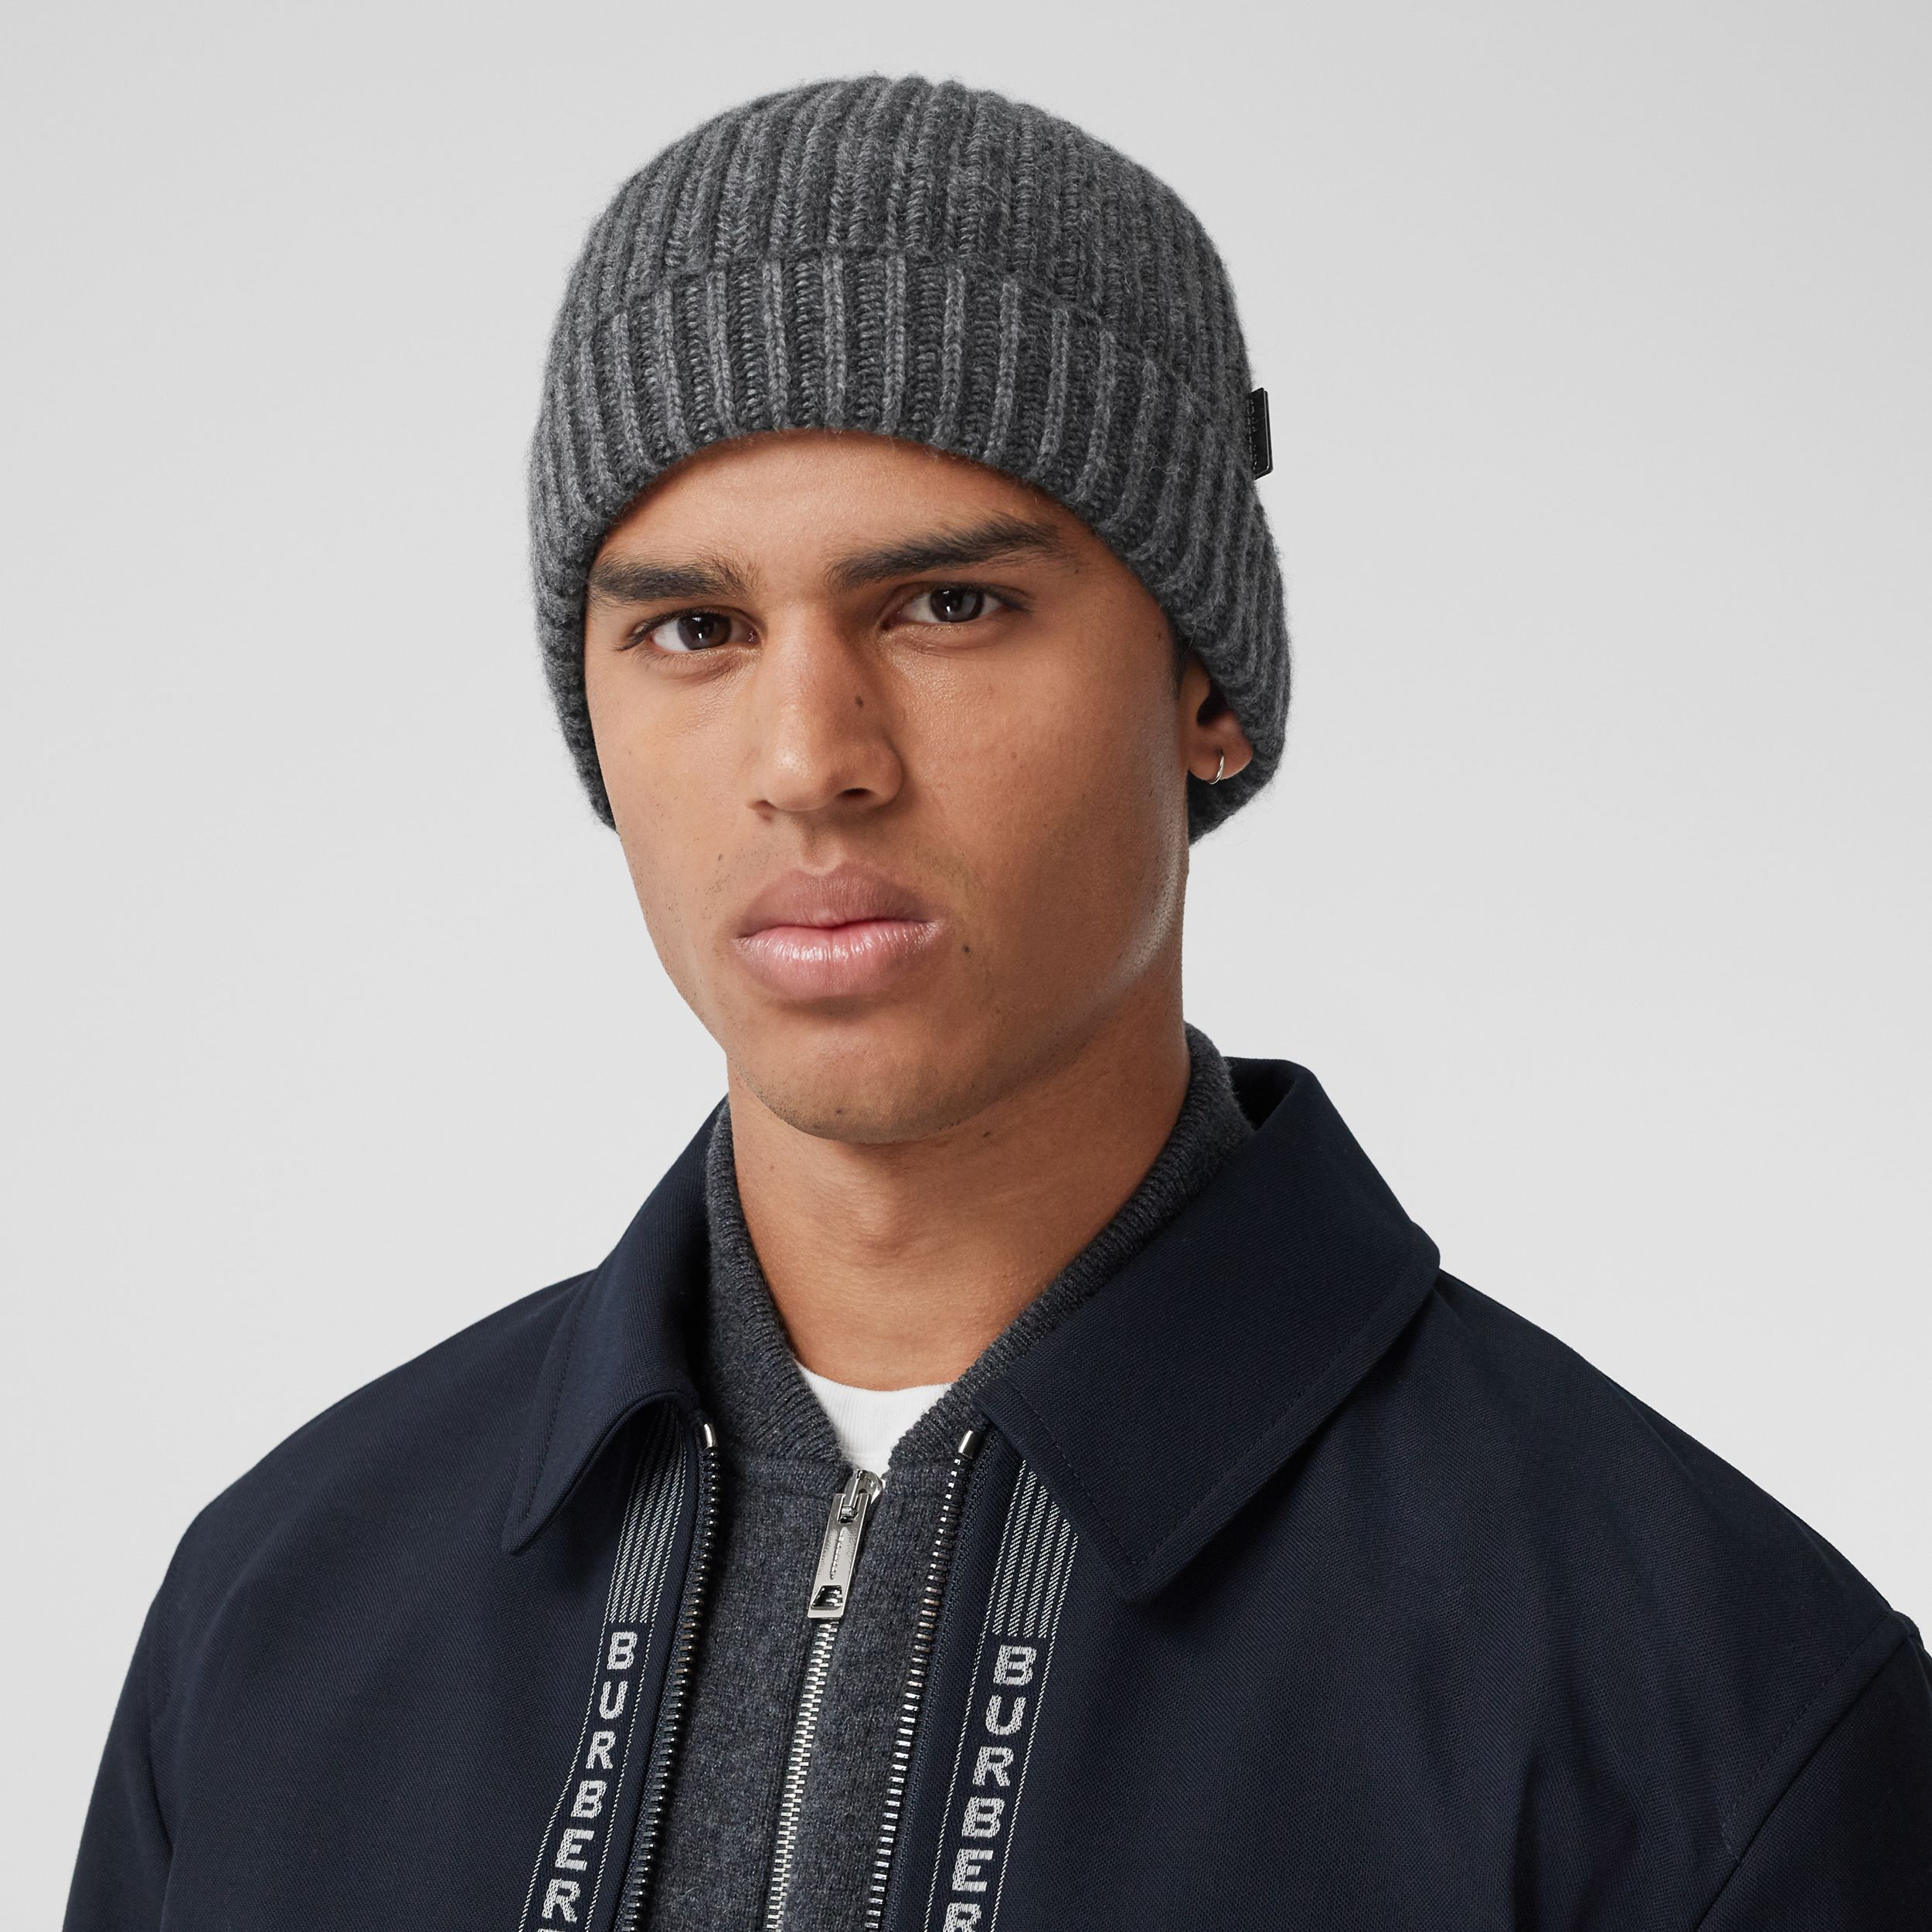 Rib Knit Cashmere Beanie in Grey Melange | Burberry - 4